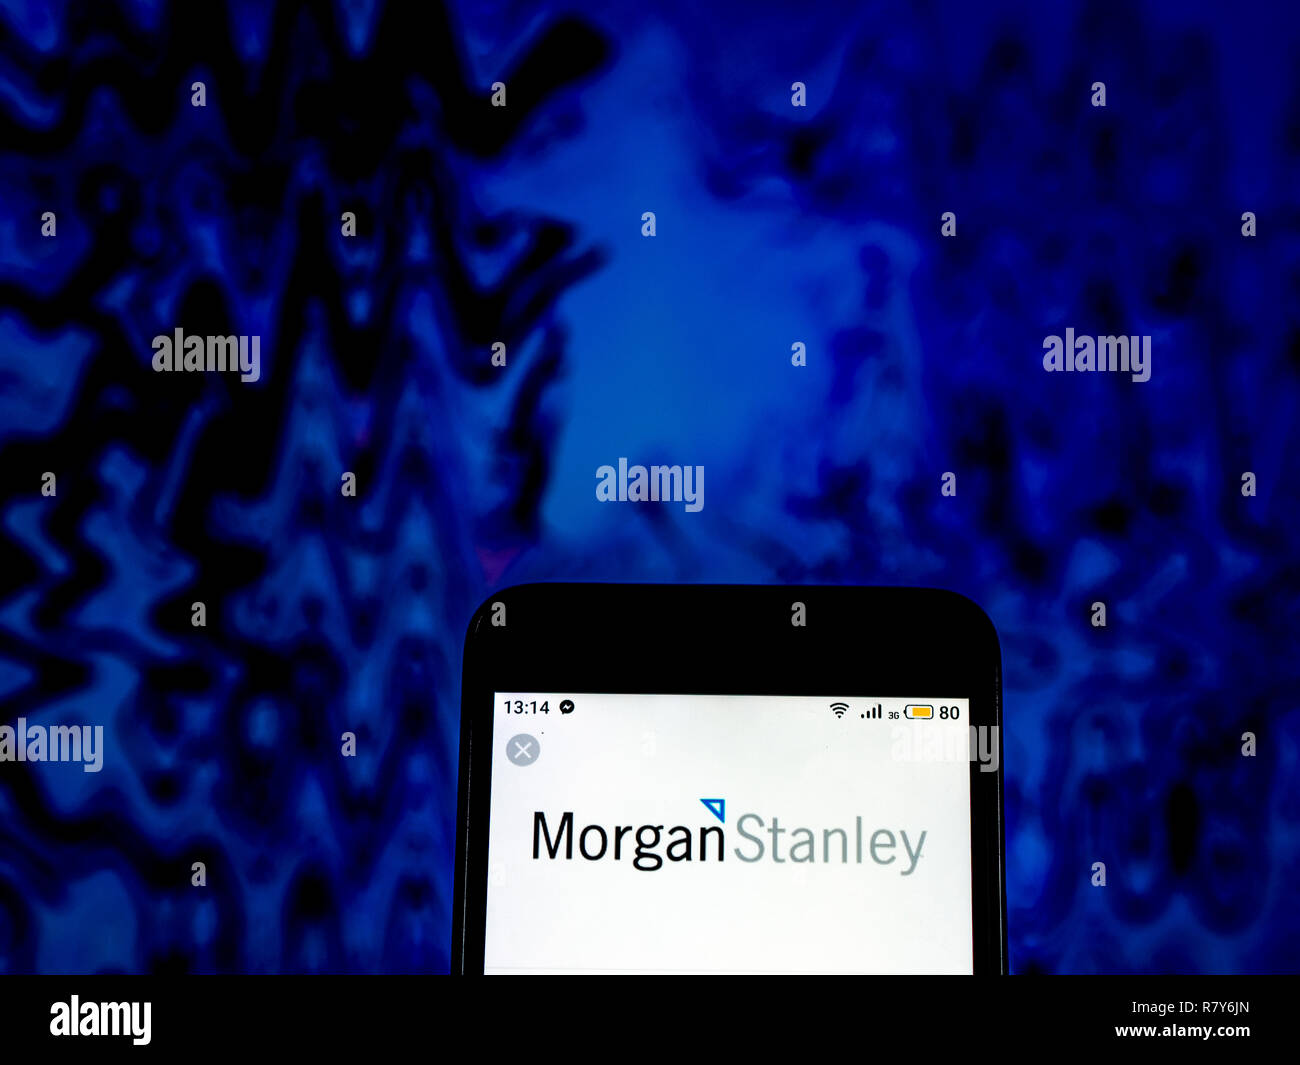 Morgan Stanley Investment banking company logo seen displayed on